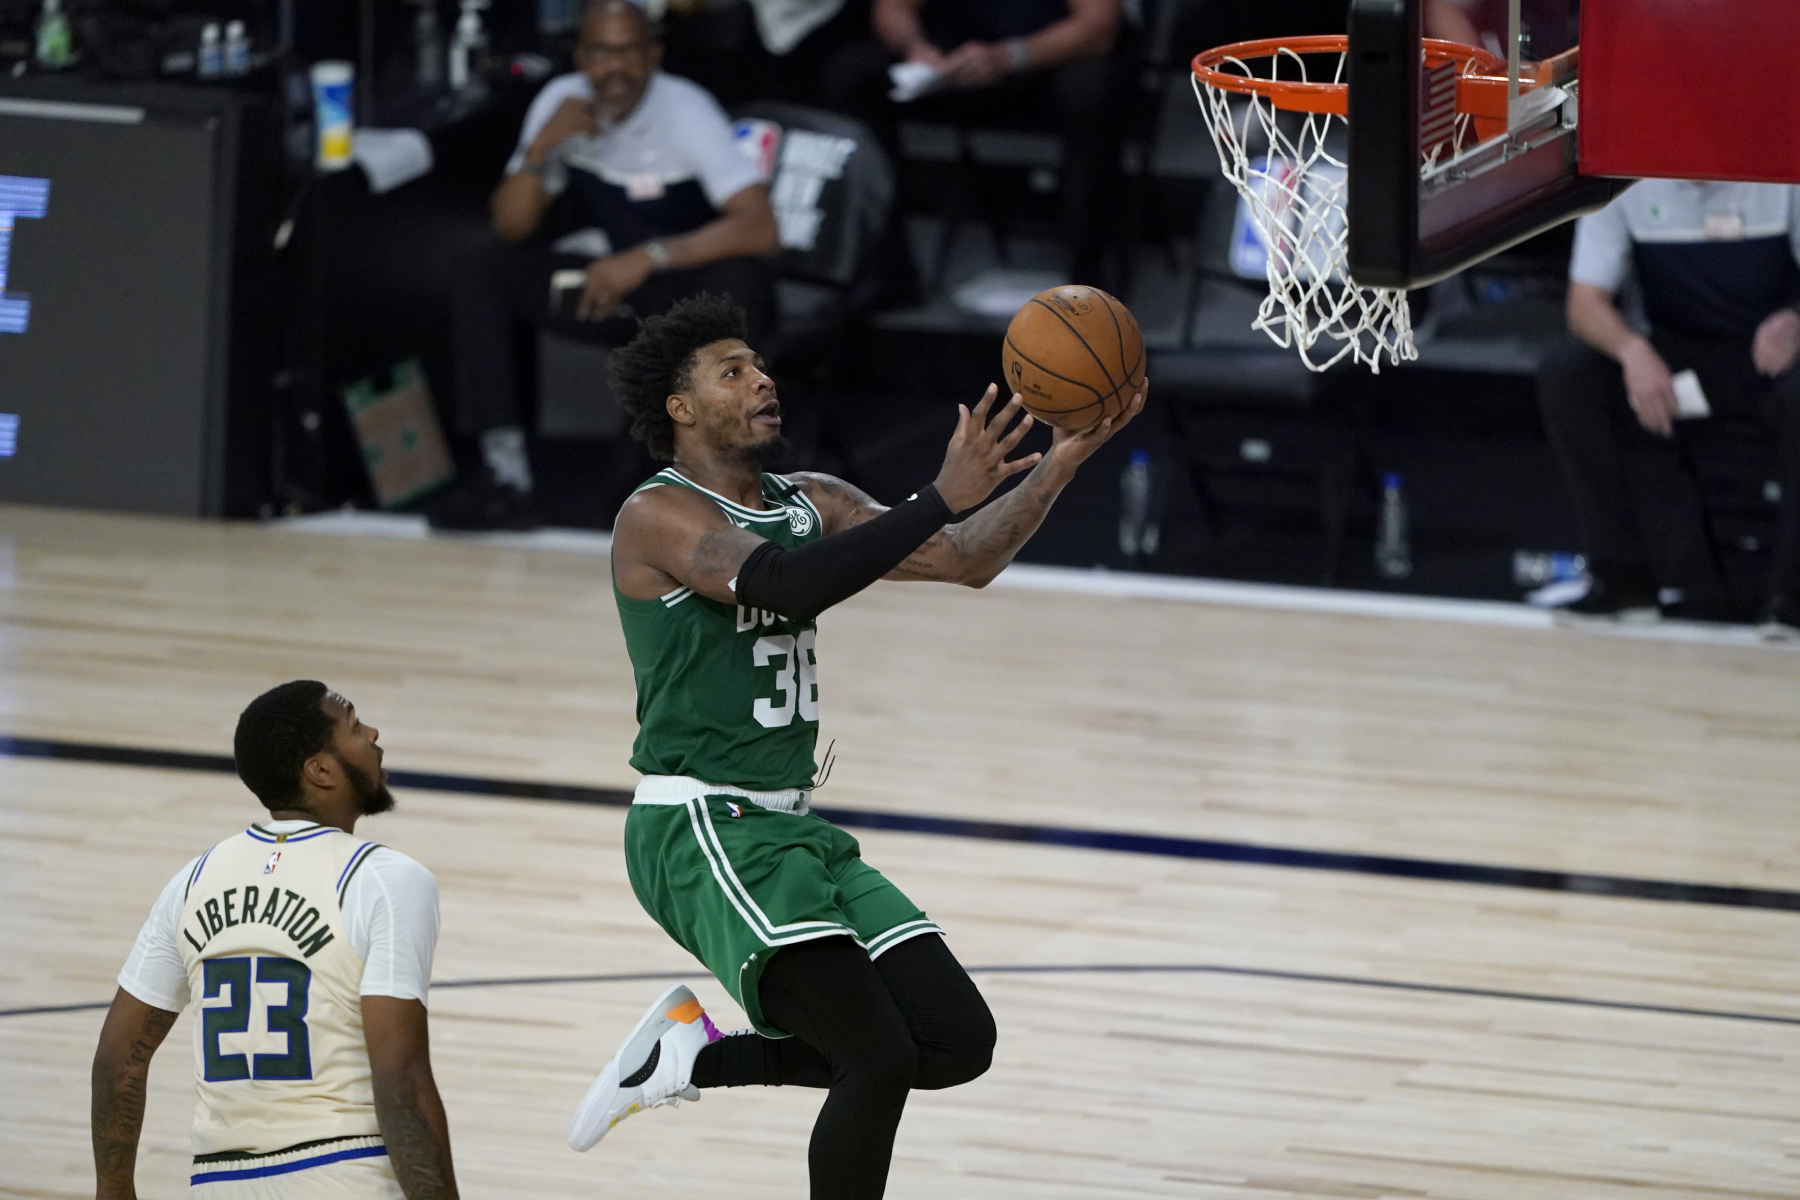 Giannis Antetokounmpo and the Milwaukee Bucks beat the Boston Celtics recently. However, Marcus Smart had a stern message for the refs after.